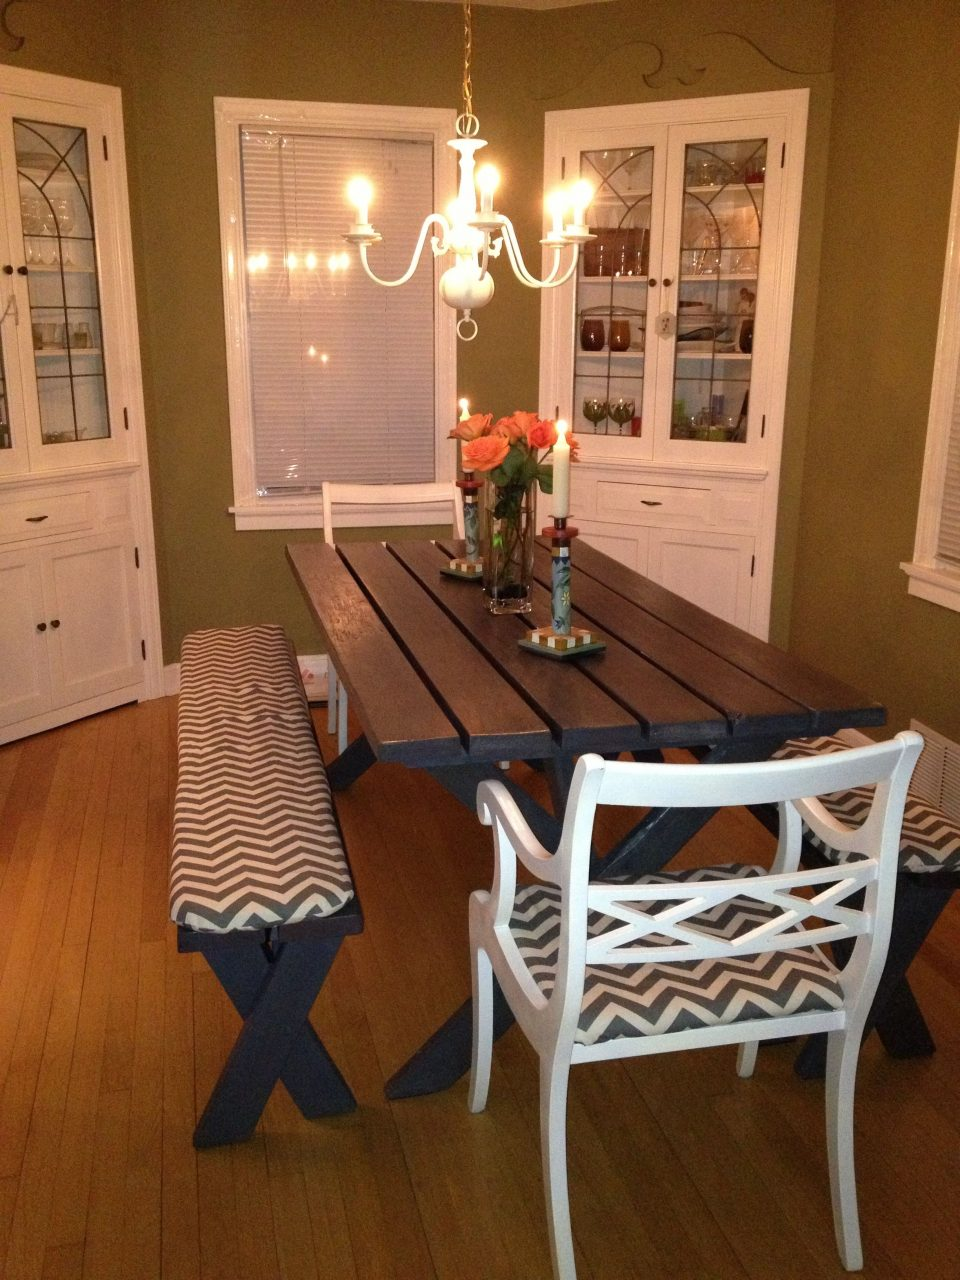 Refurbished From An Oldbeat Up Picnic Table To A Chic Gray Dining